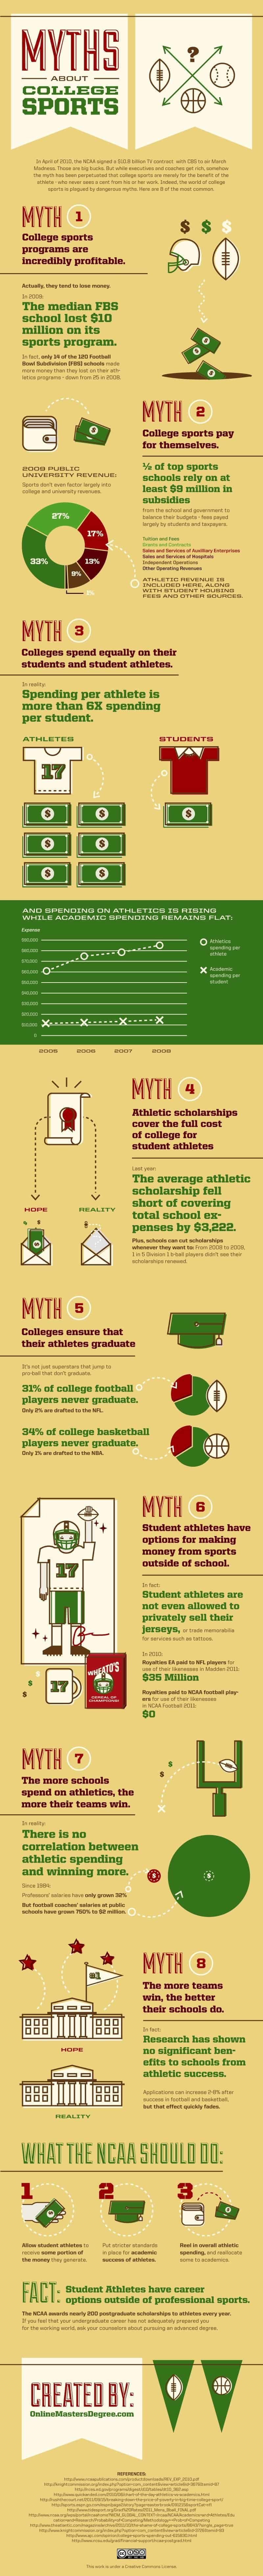 college-sports-myths